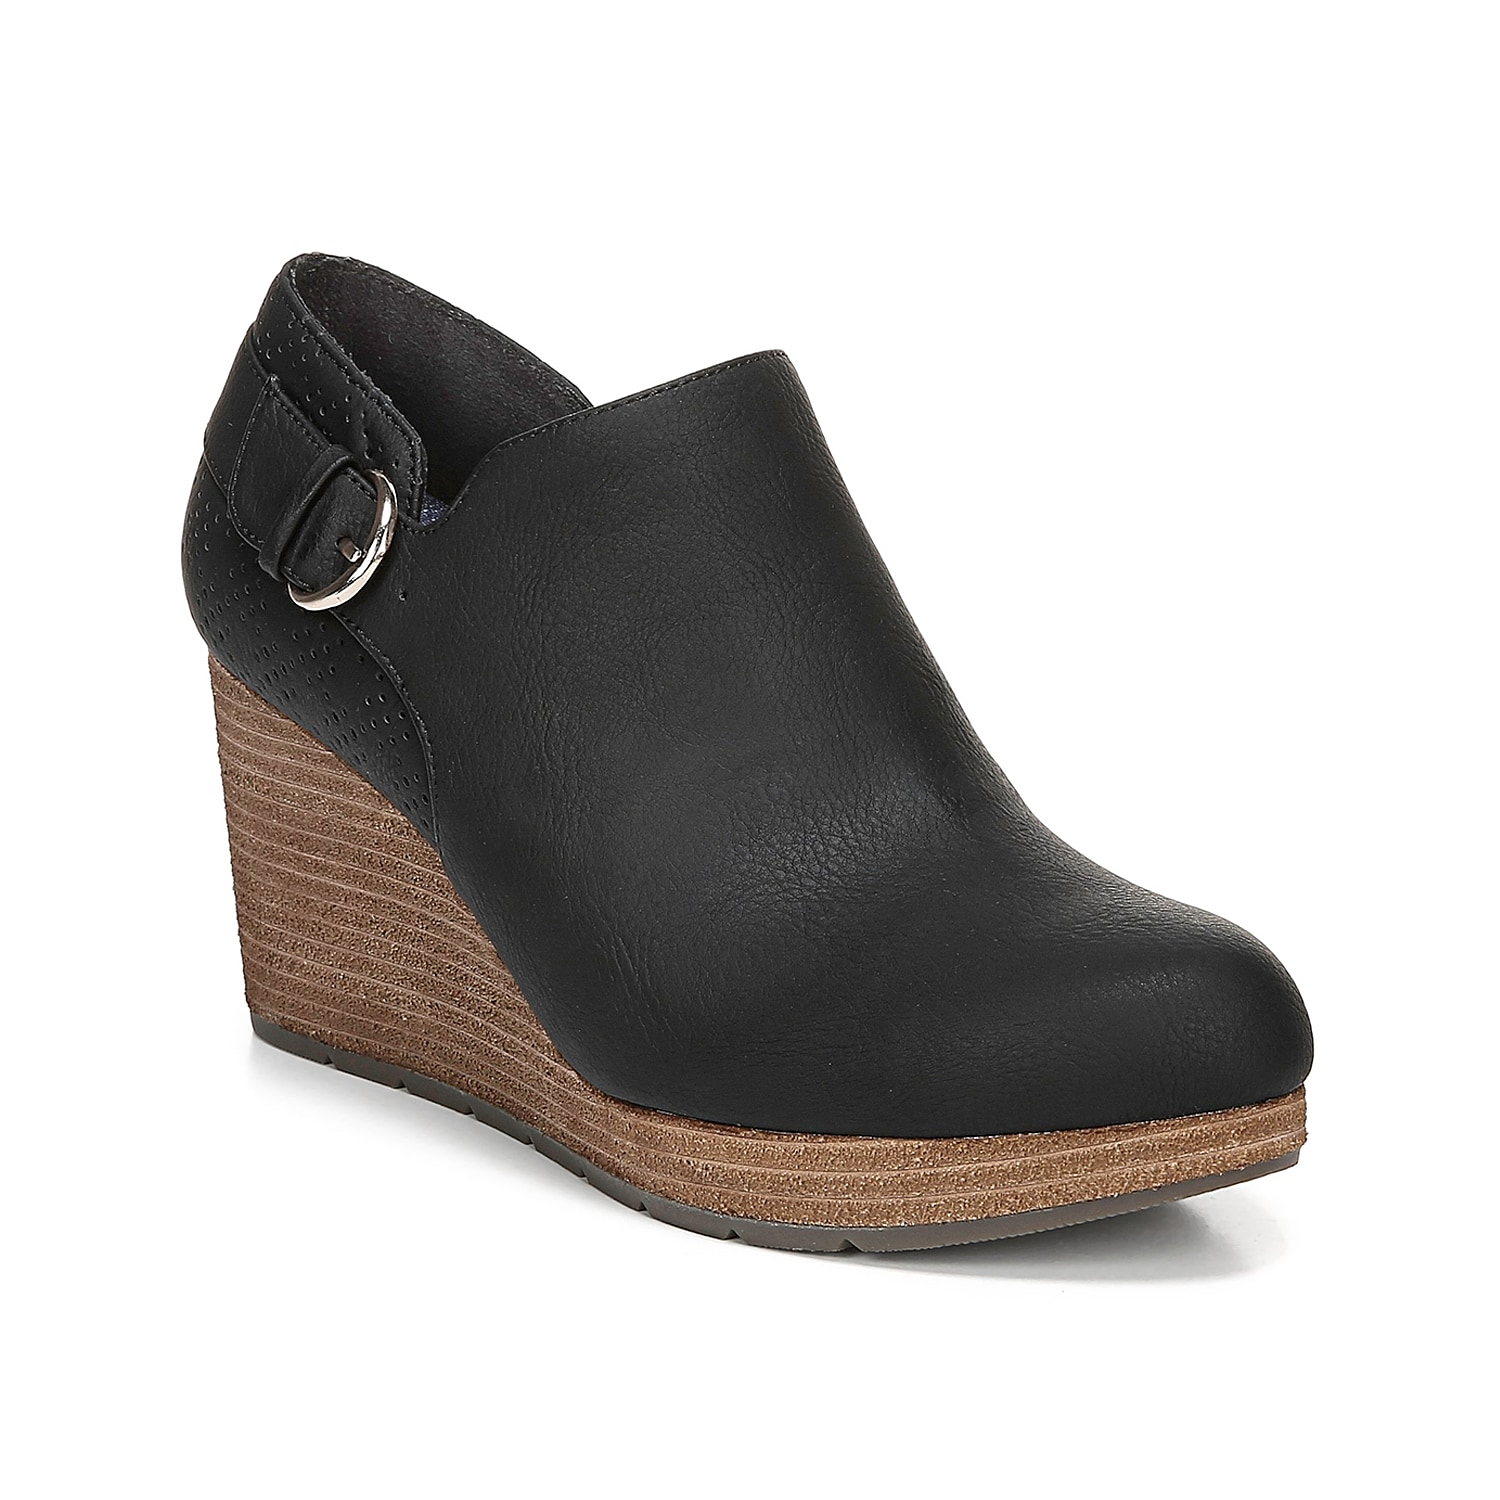 Lift your cool weather look with the Wynter wedge bootie from Dr. Scholl\\\'s. A laser-cut heel counter is embellished with a decorative buckle accent for modern style.